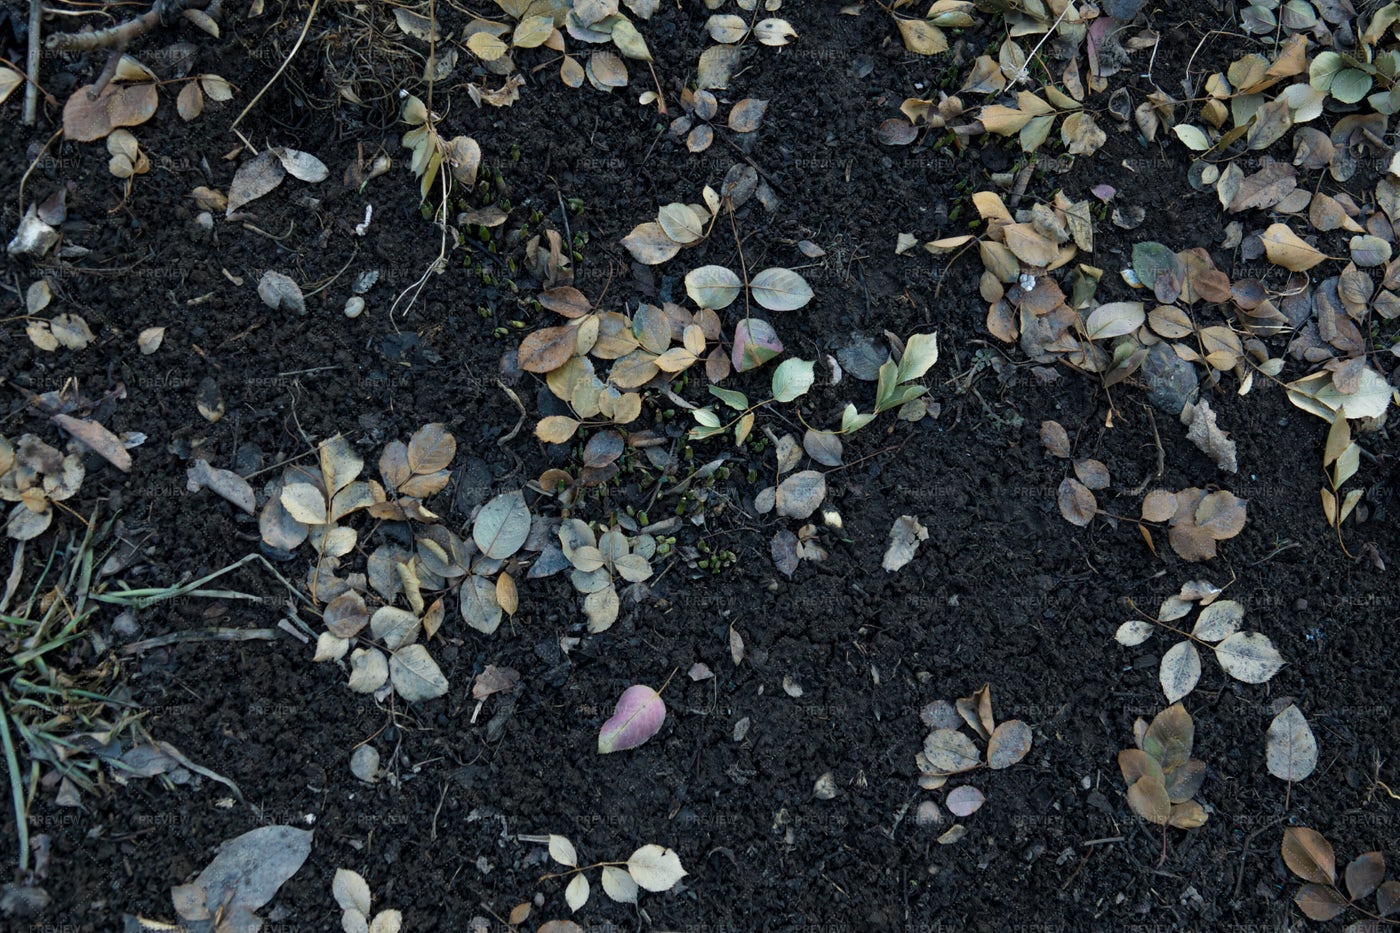 Soil Texture With Leaves: Stock Photos